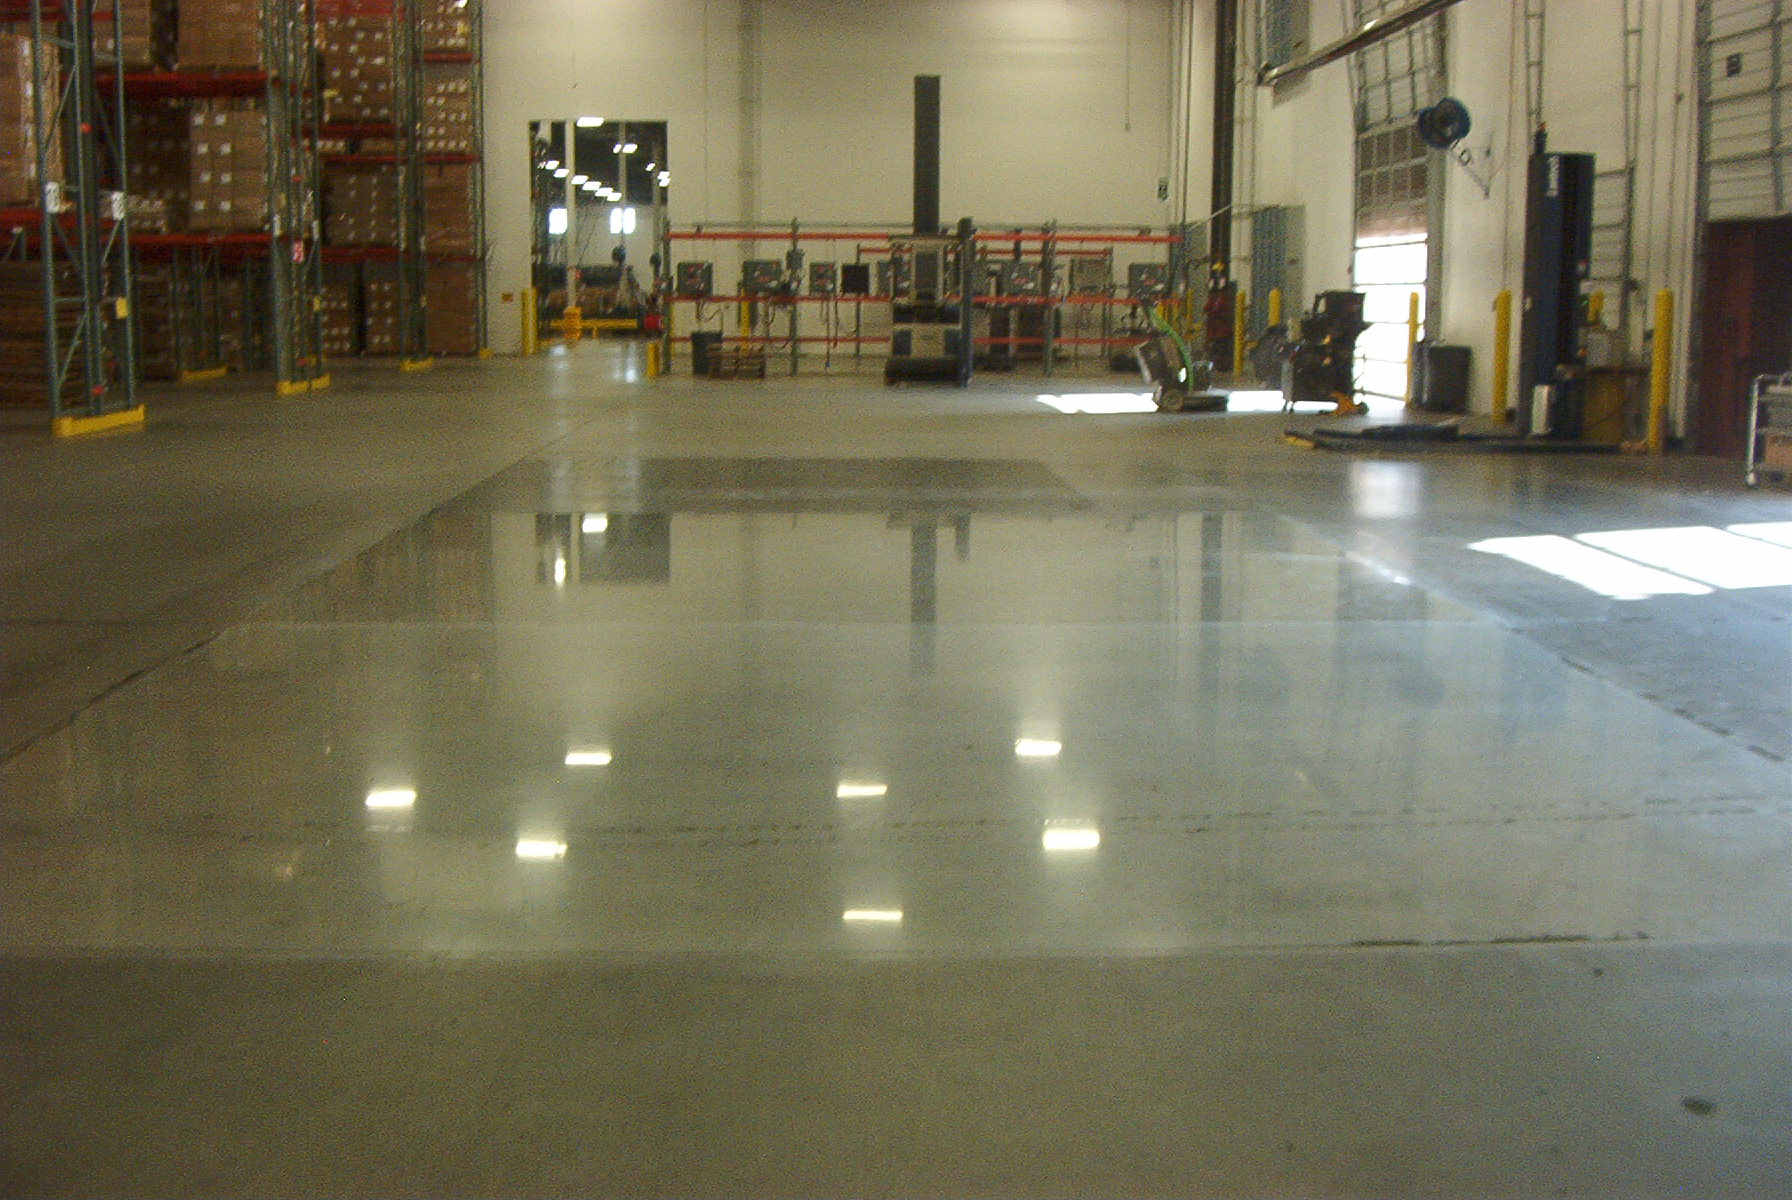 High and medium gloss polished floor shines for medical warehouse.